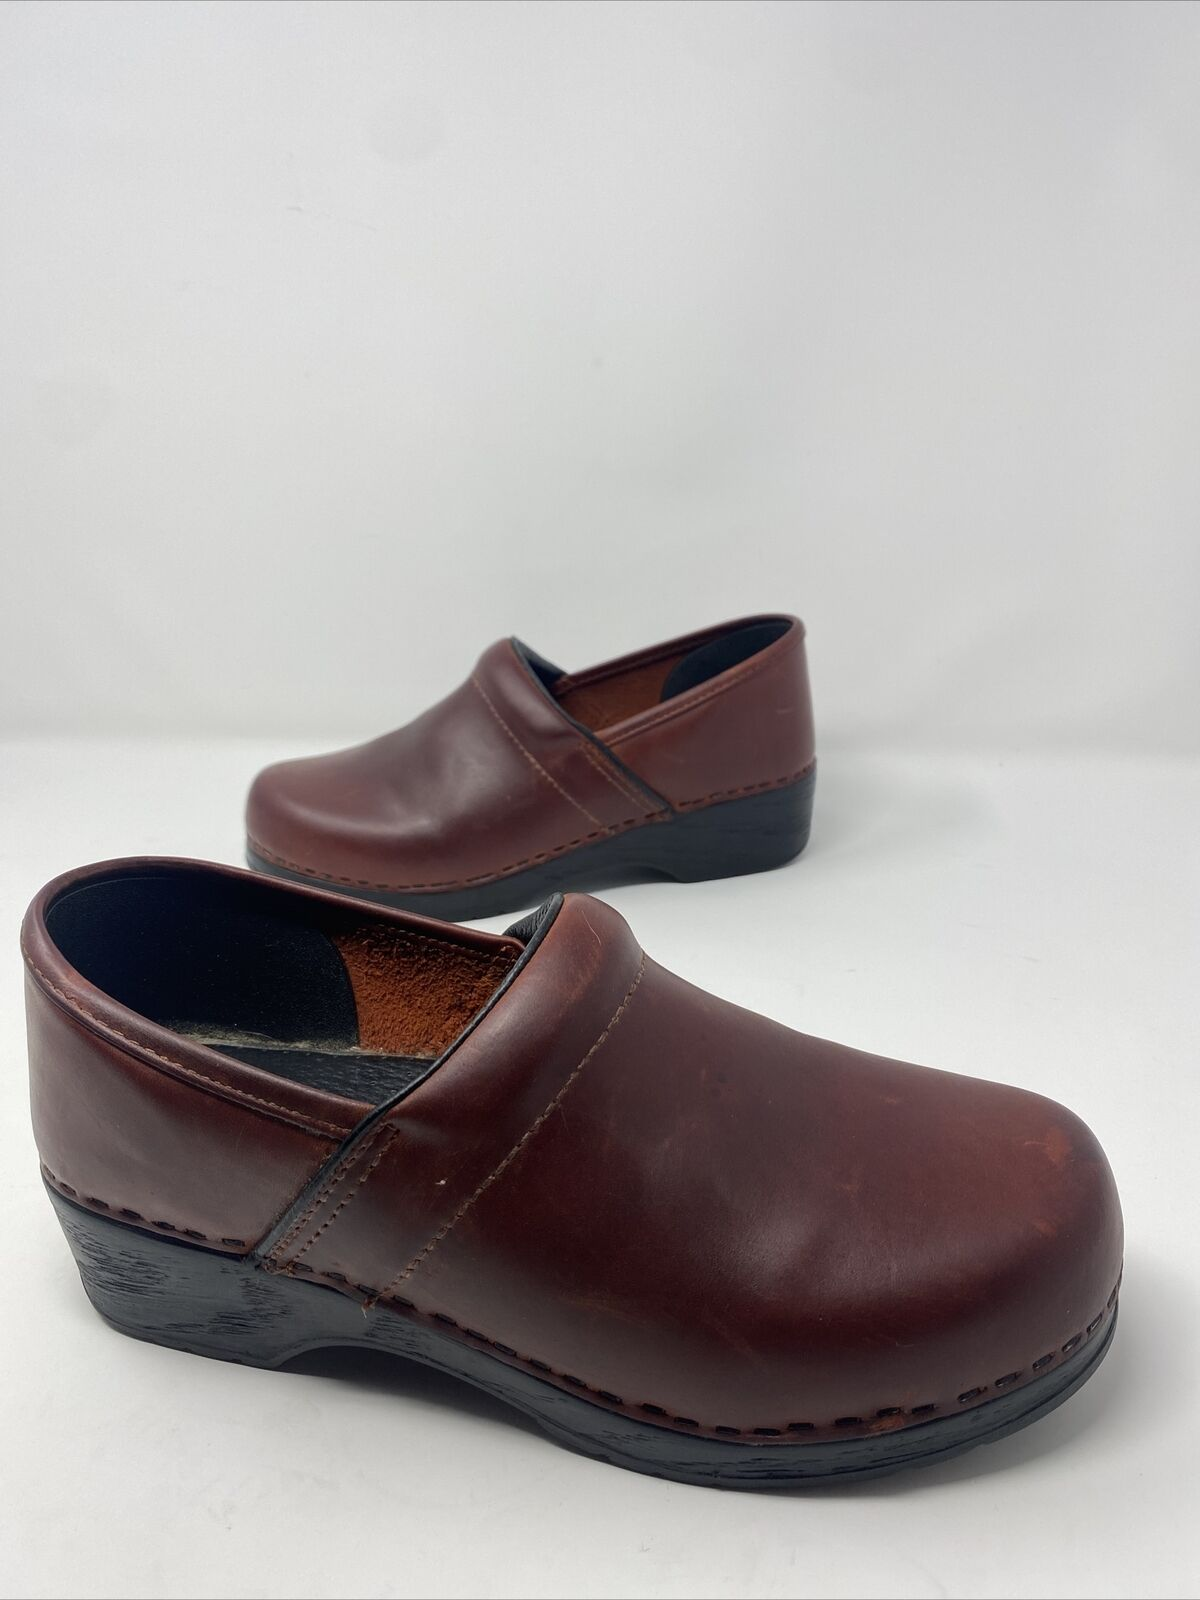 LL Bean Leather Clogs Size 39 8 Womens Burgundy Comfort Shoes Rubber Soles